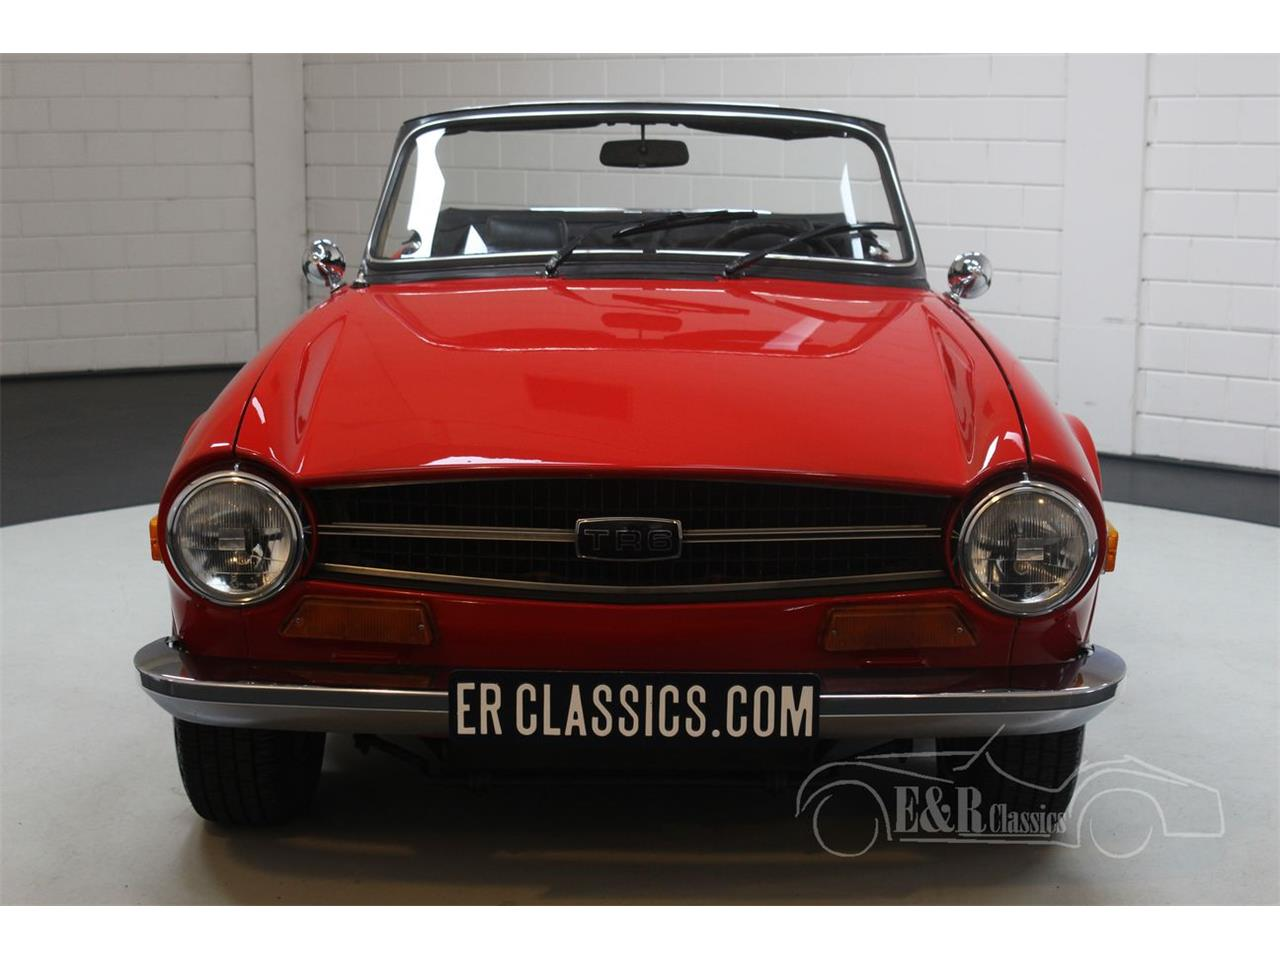 Large Picture of Classic '73 Triumph TR6 located in Noord Brabant - $25,800.00 Offered by E & R Classics - PWMQ